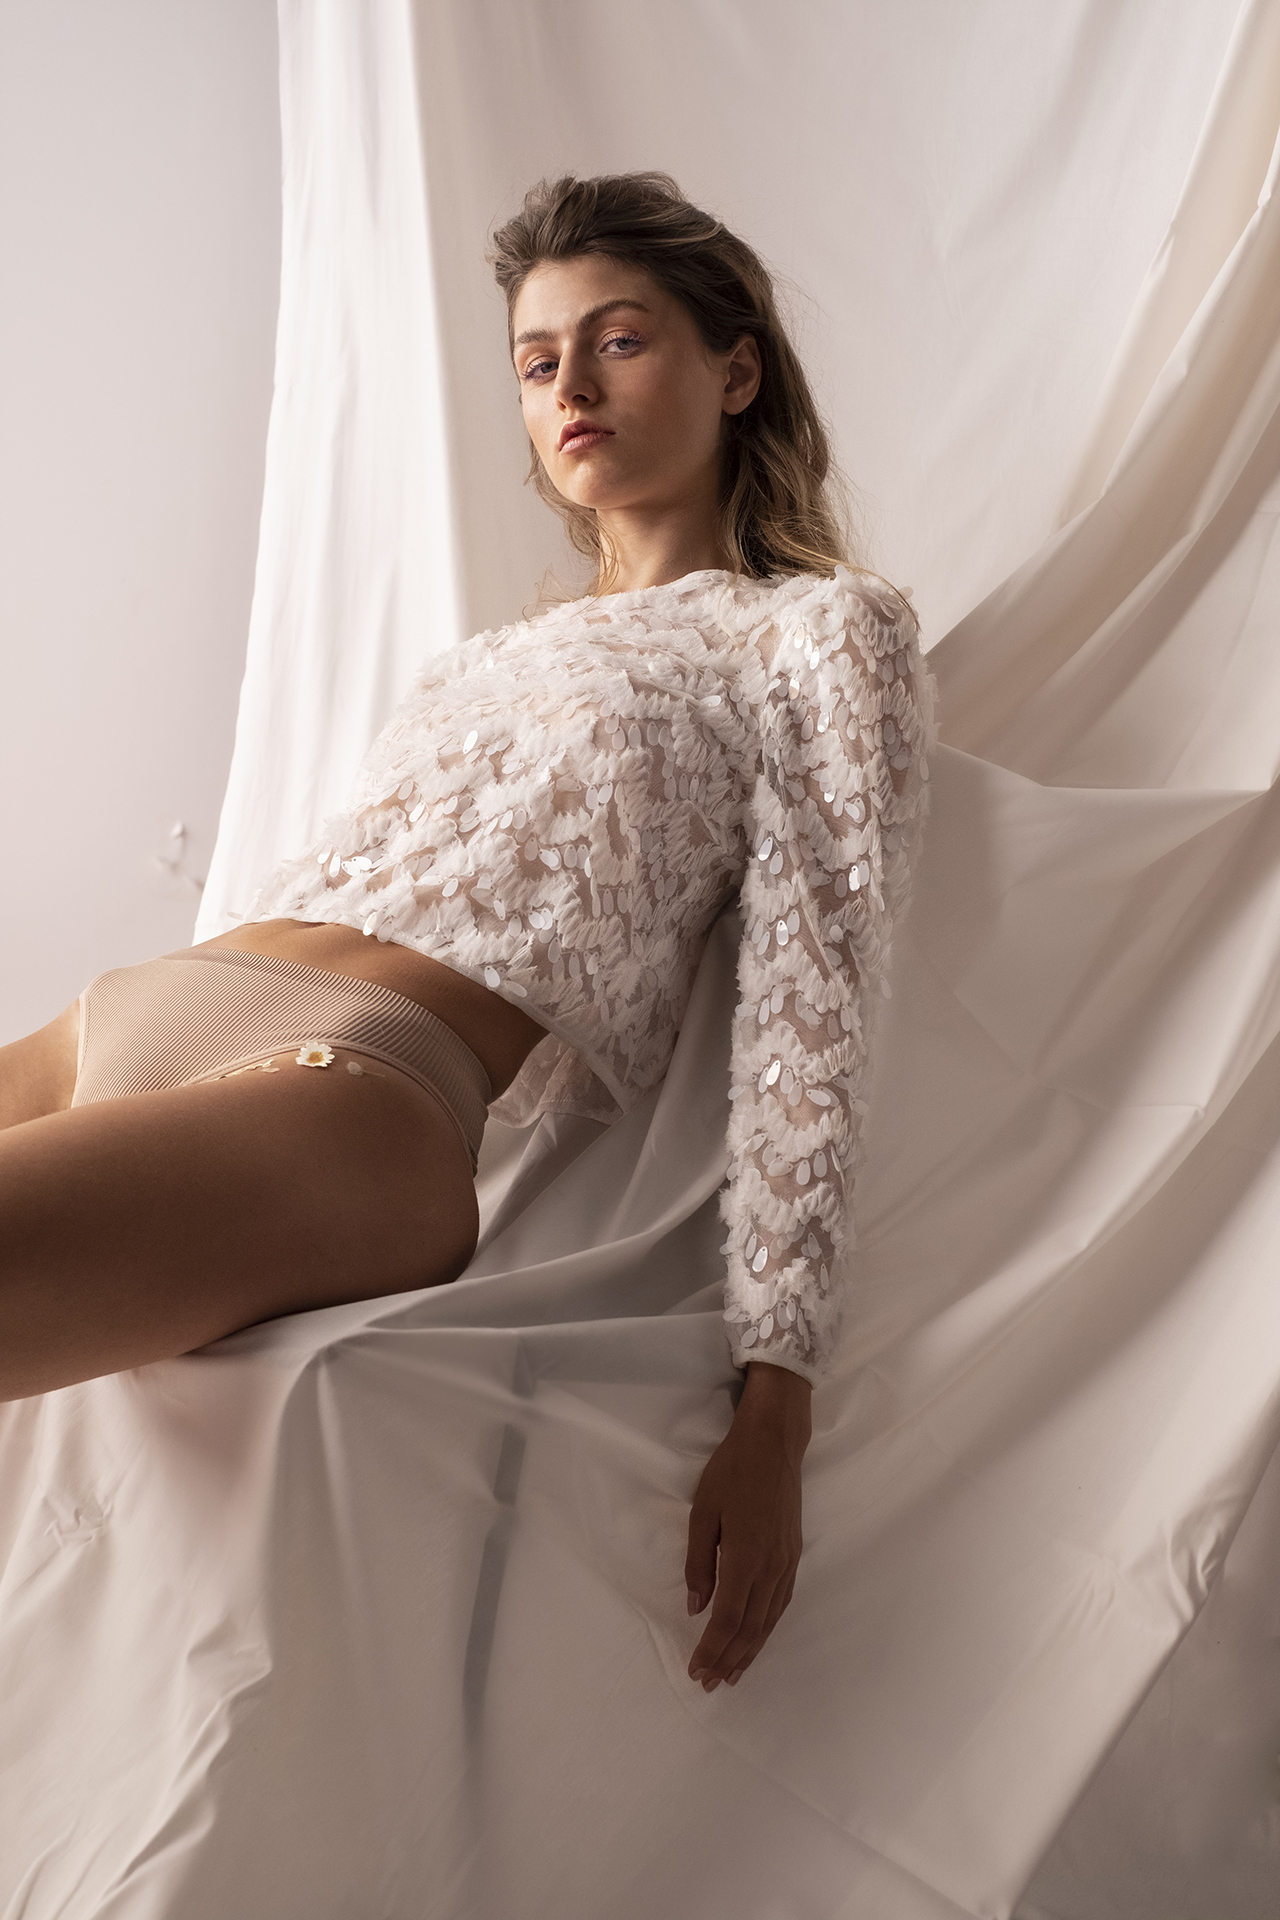 Anna-Lena_Guenther_eastwestmodels_MICHELLE_5899